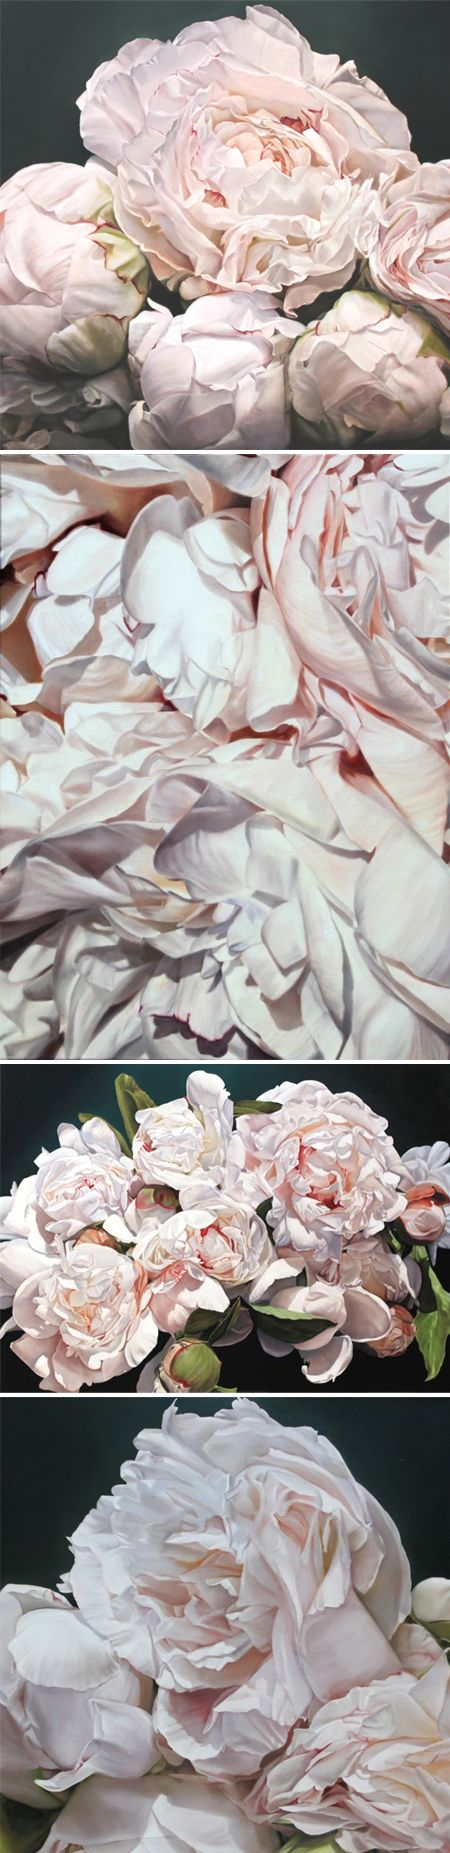 peony paintings } by thomas darnell ps. they're HUGE! IDEA: RE-CREATE USING FABRICS/ SILK.